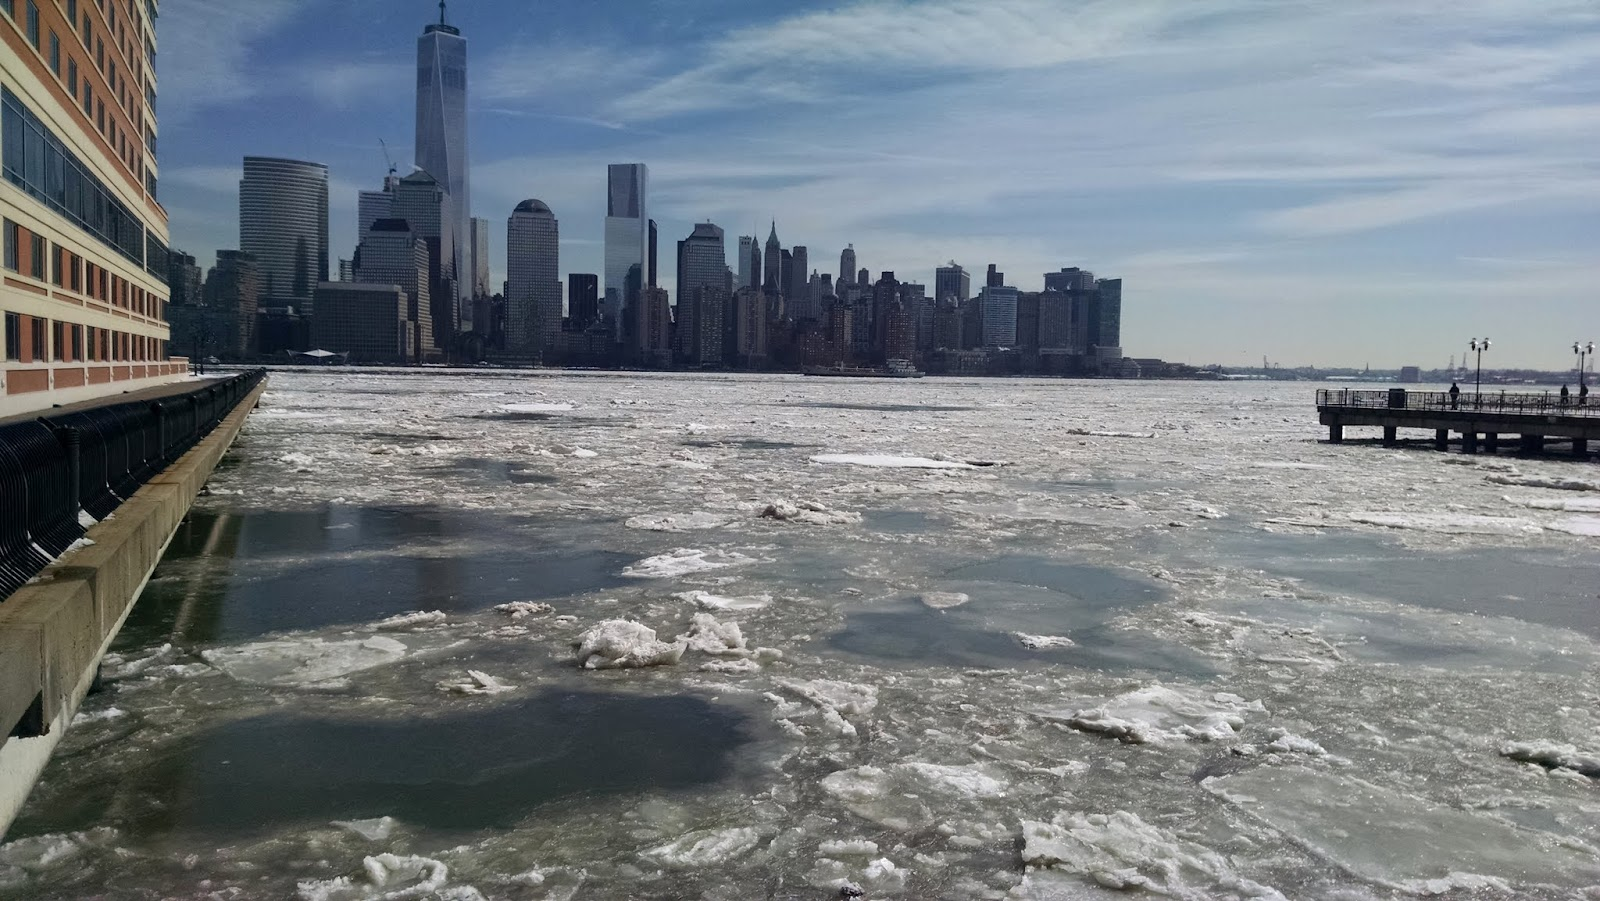 Замерзший Гудзон, Нью-Джерси (Frozen Hudson River, NJ)